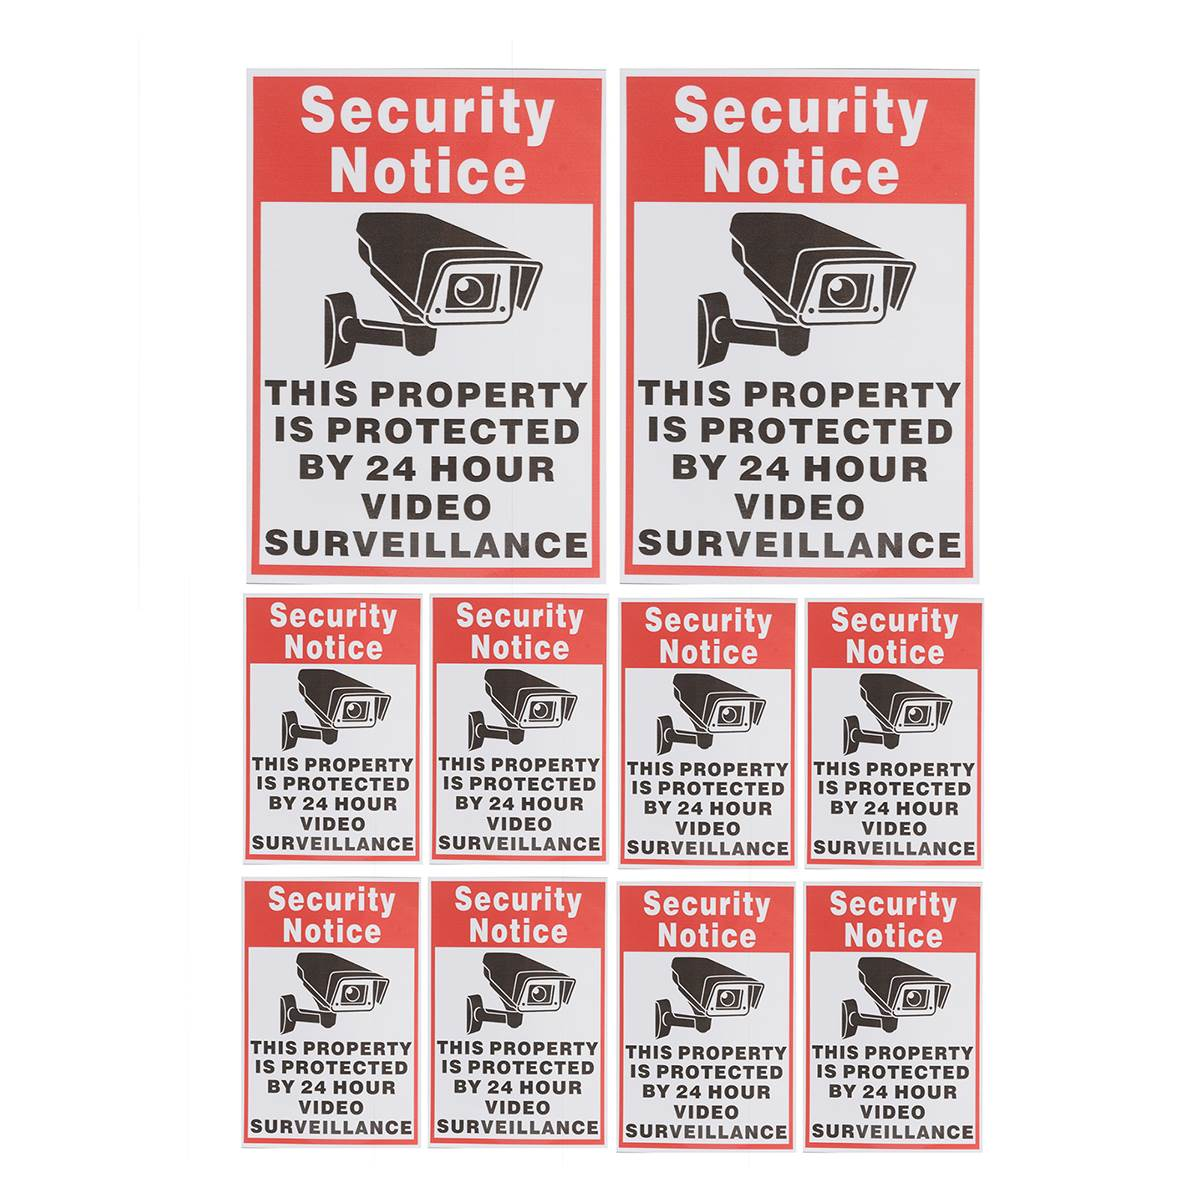 NEW Safurance 10pcs/lot Waterproof Sunscreen PVC Home CCTV Video Surveillance Security Camera Alarm Sticker Warning Decal Signs new safurance 10pcs lot waterproof sunscreen pvc home cctv video surveillance security camera alarm sticker warning decal signs